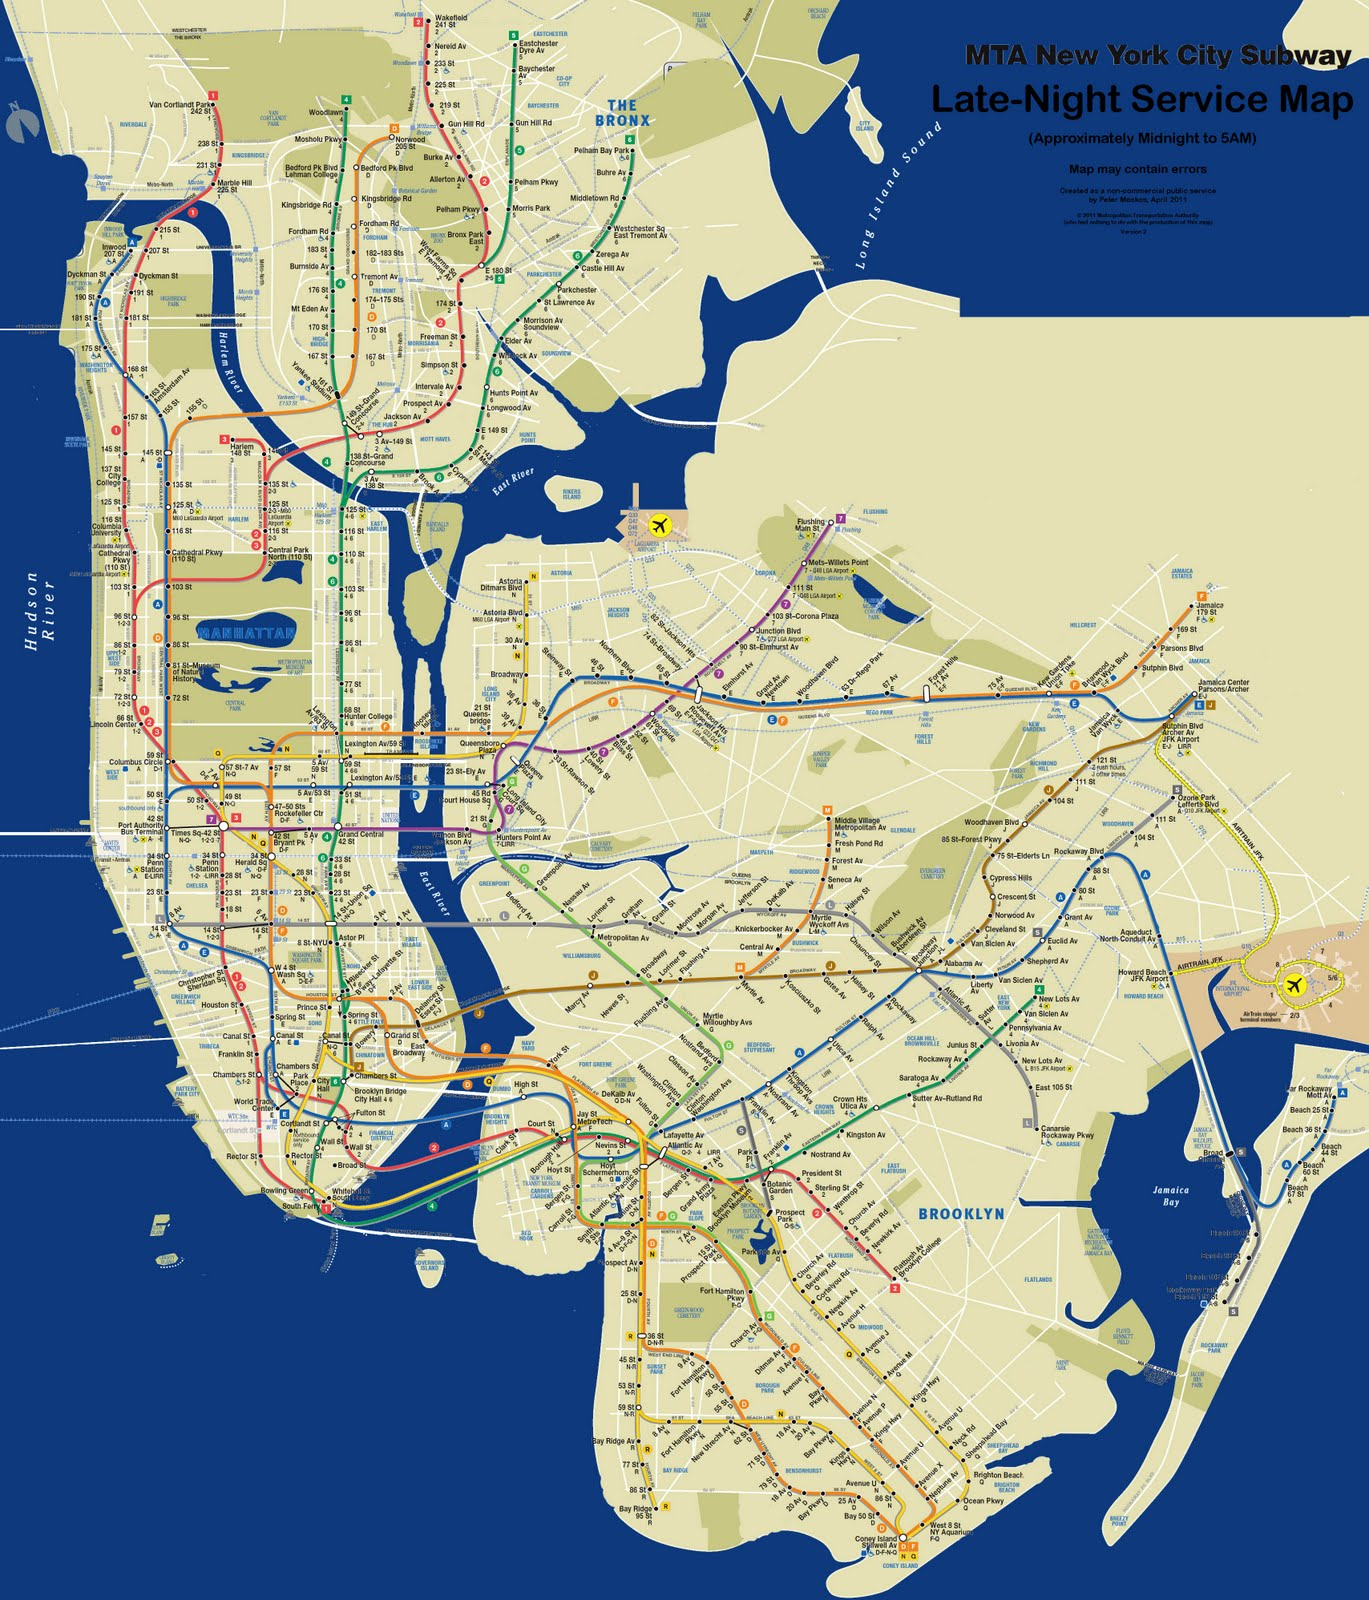 Metro Nyc Map Pdf.Map Of The Day Subway Service At Night Second Ave Sagas